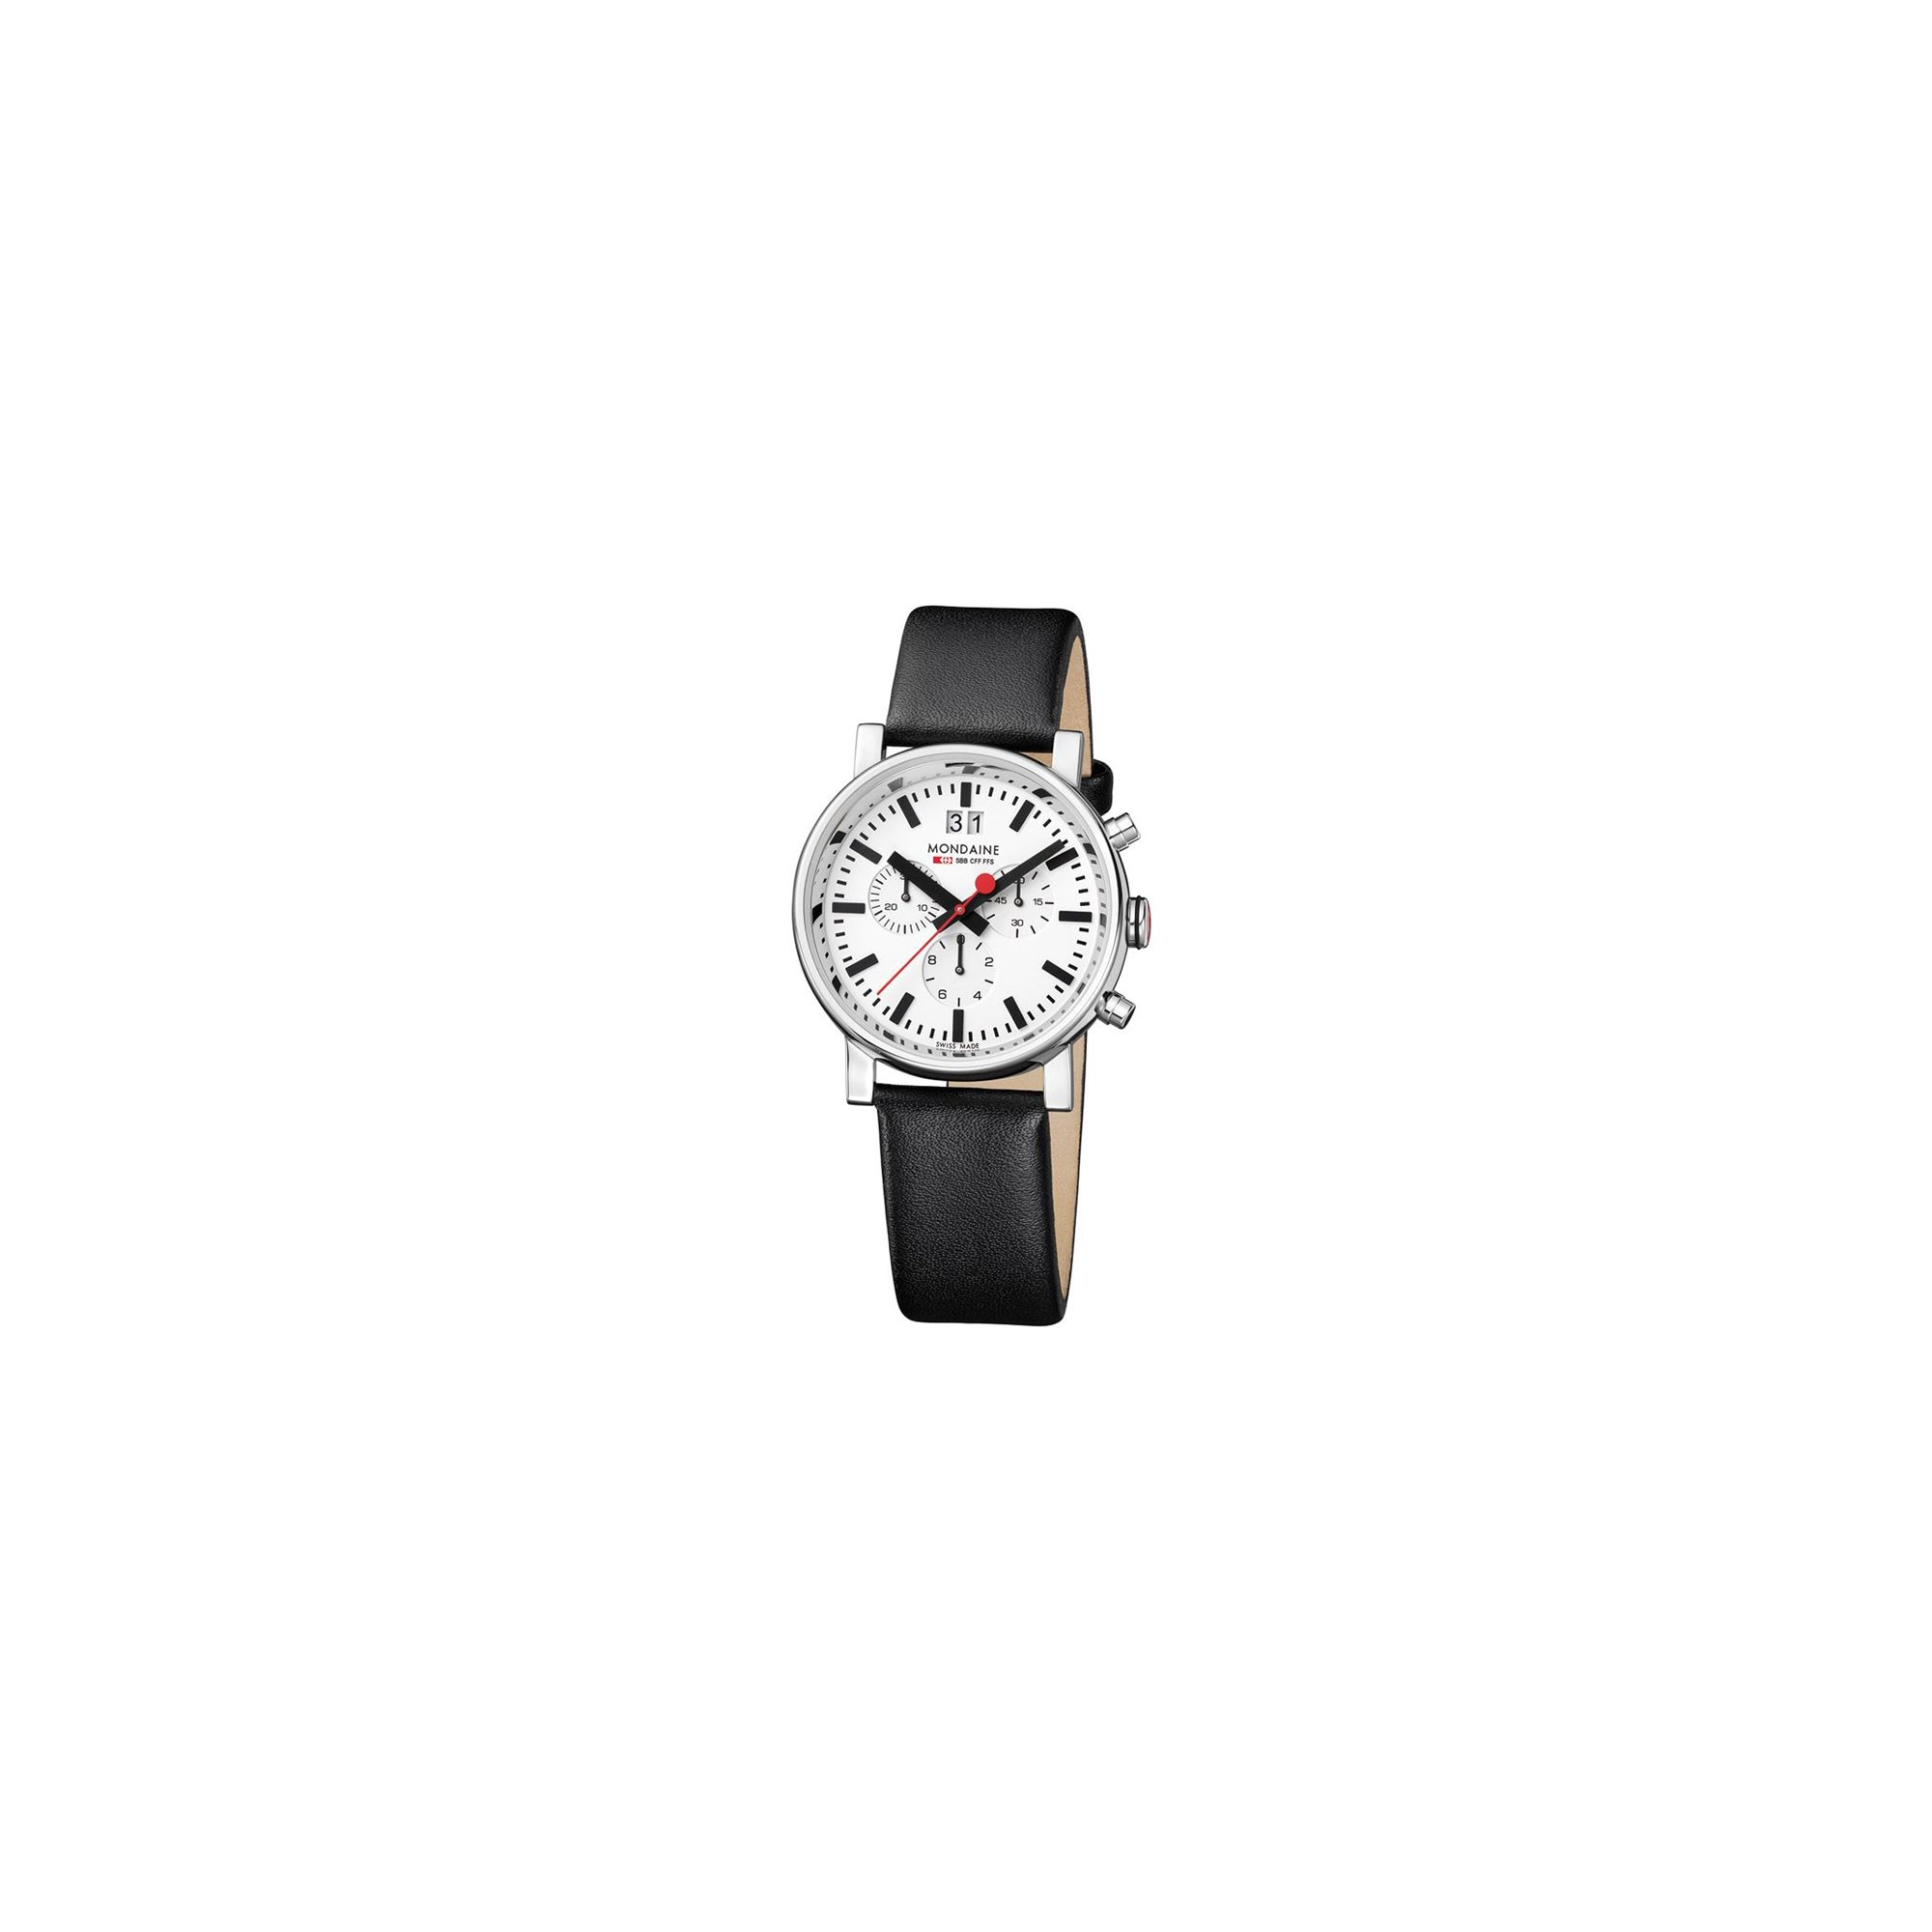 tesco direct online shopping enjoy big savings today at tesco mondaine gents black leather strap watch a6903030411sbb at tesco direct